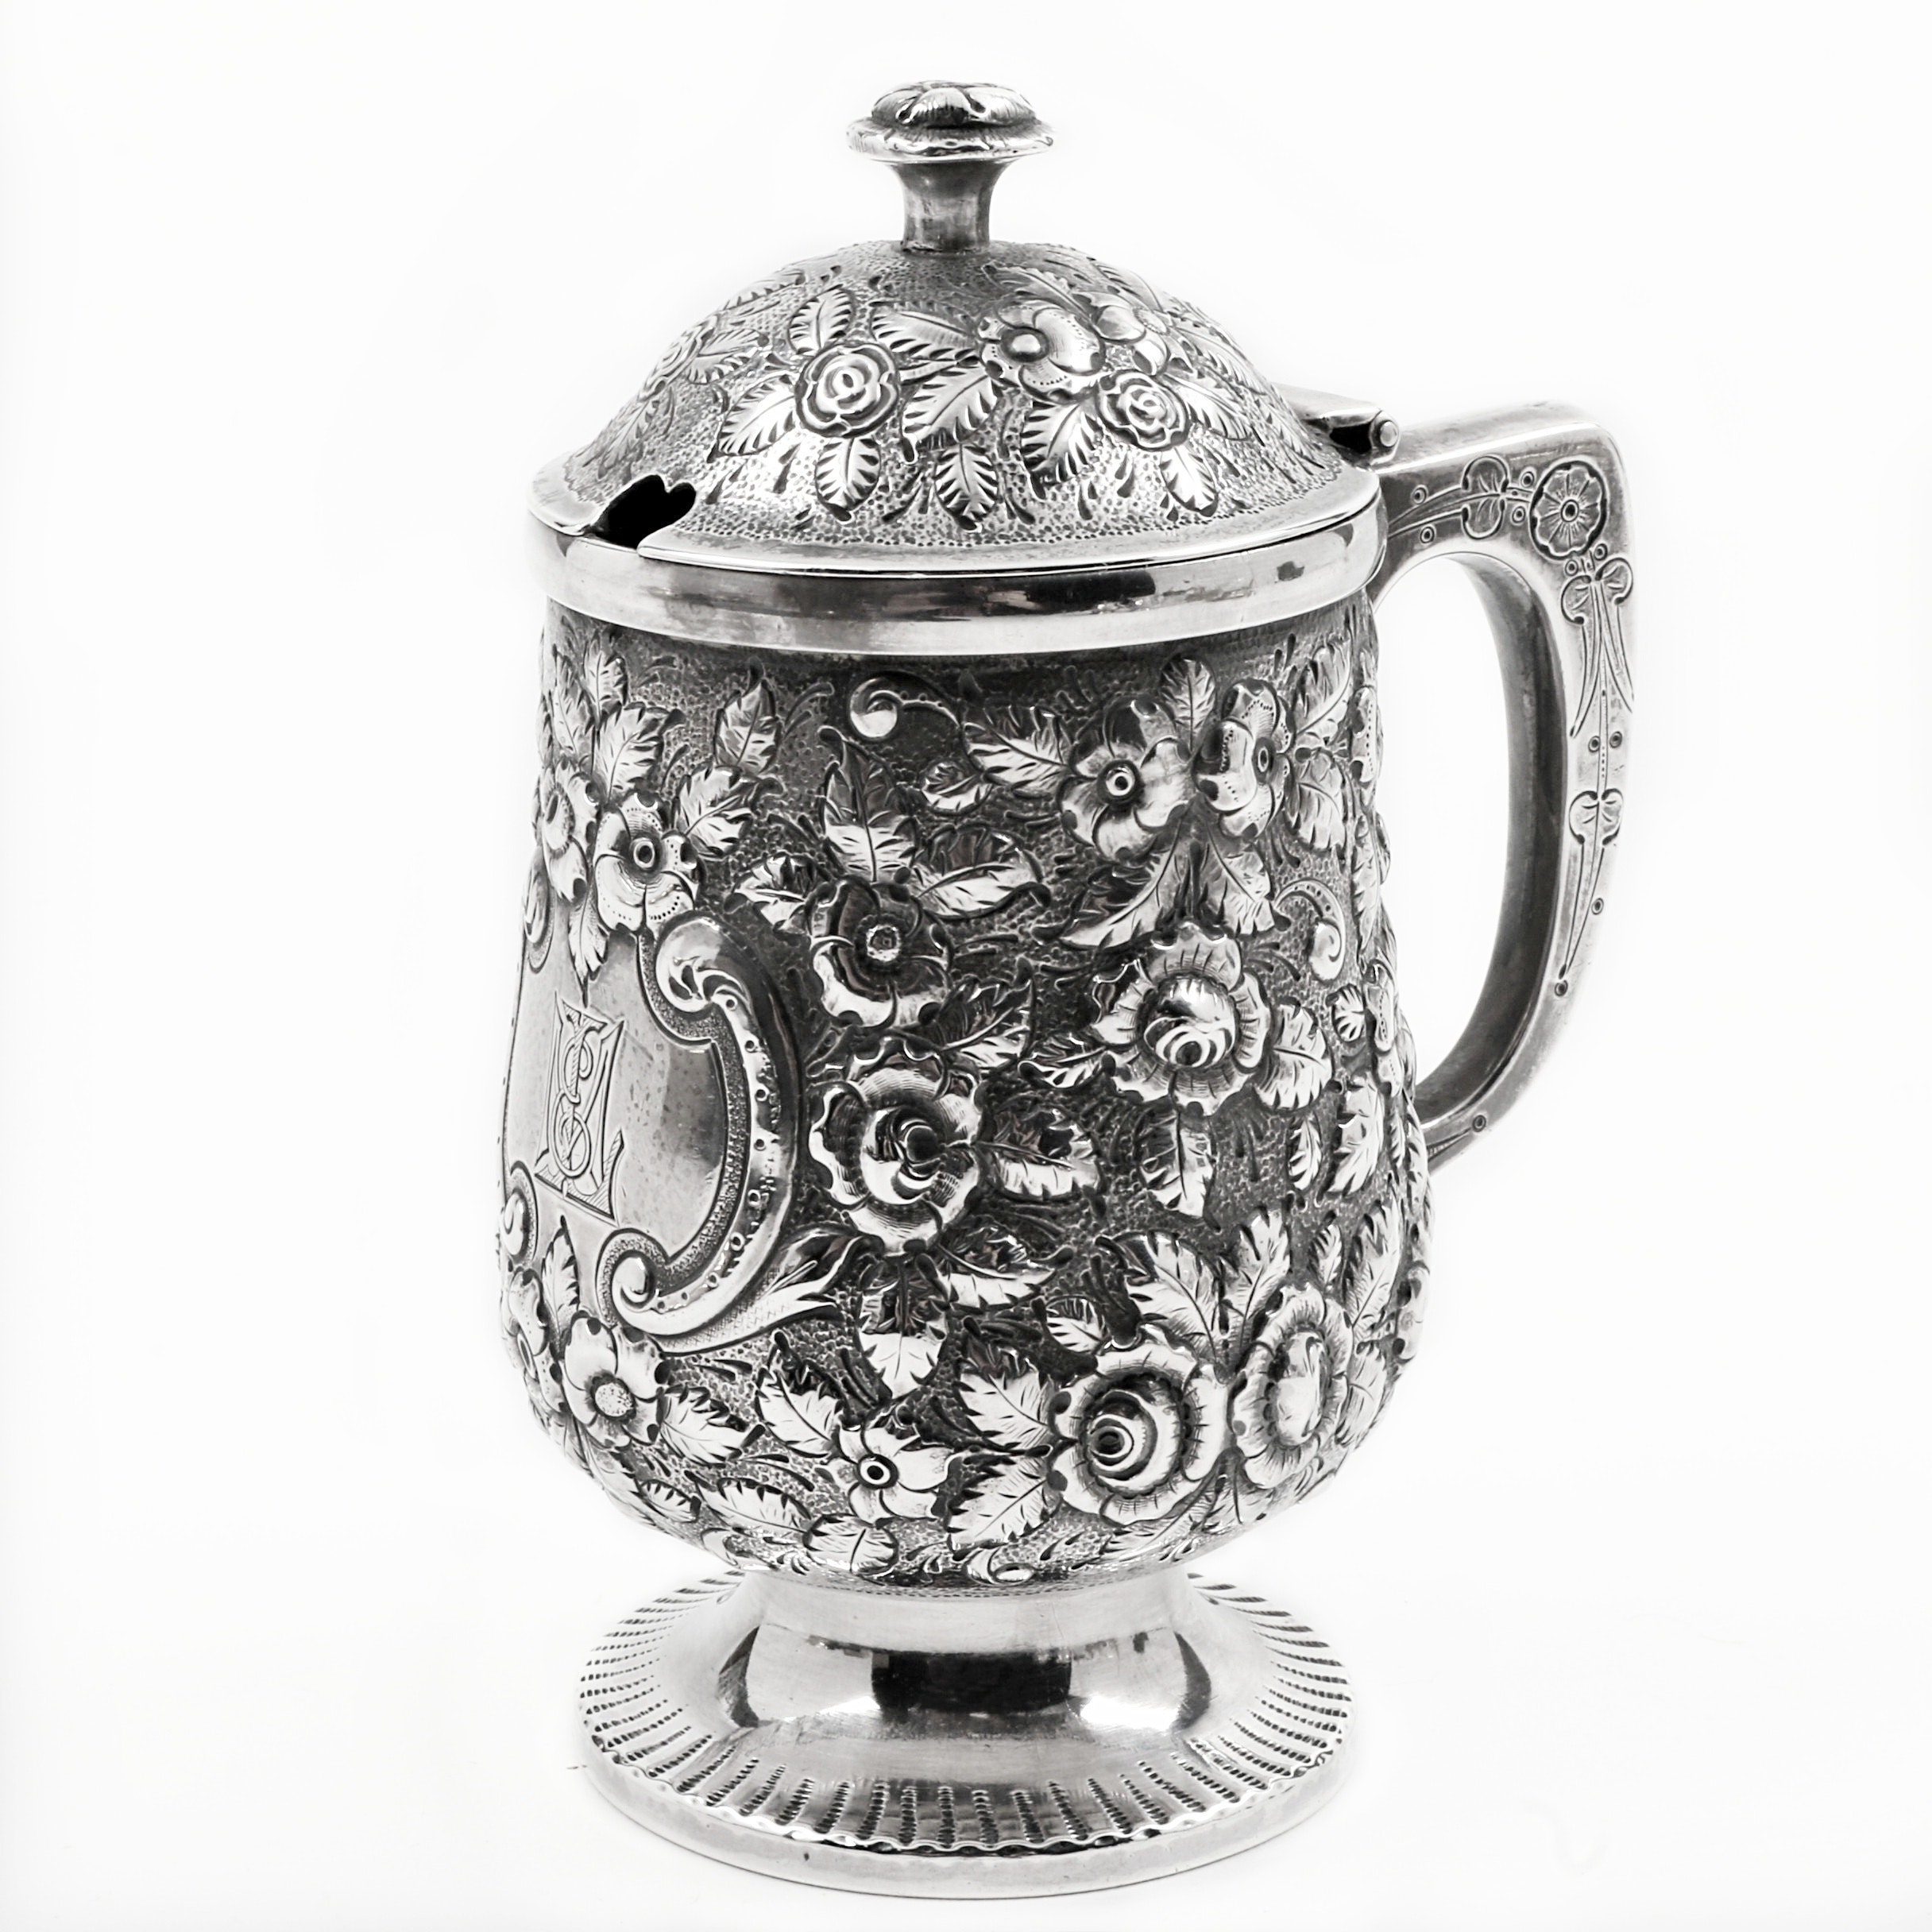 Antique Krider & Biddle Sterling Silver Jelly Pot from A.E. Warner